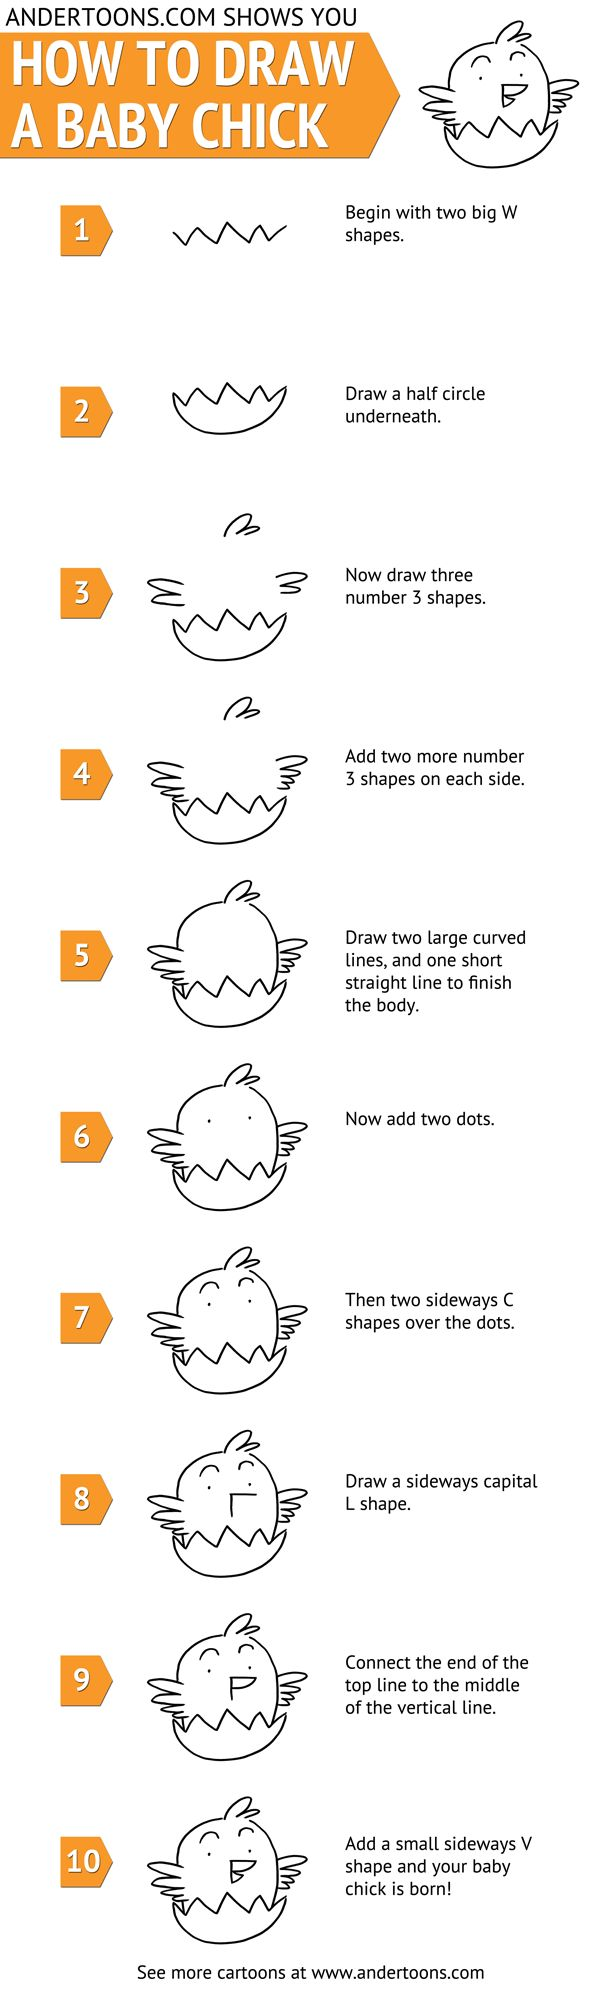 How to draw a cartoon baby chick step-by-step